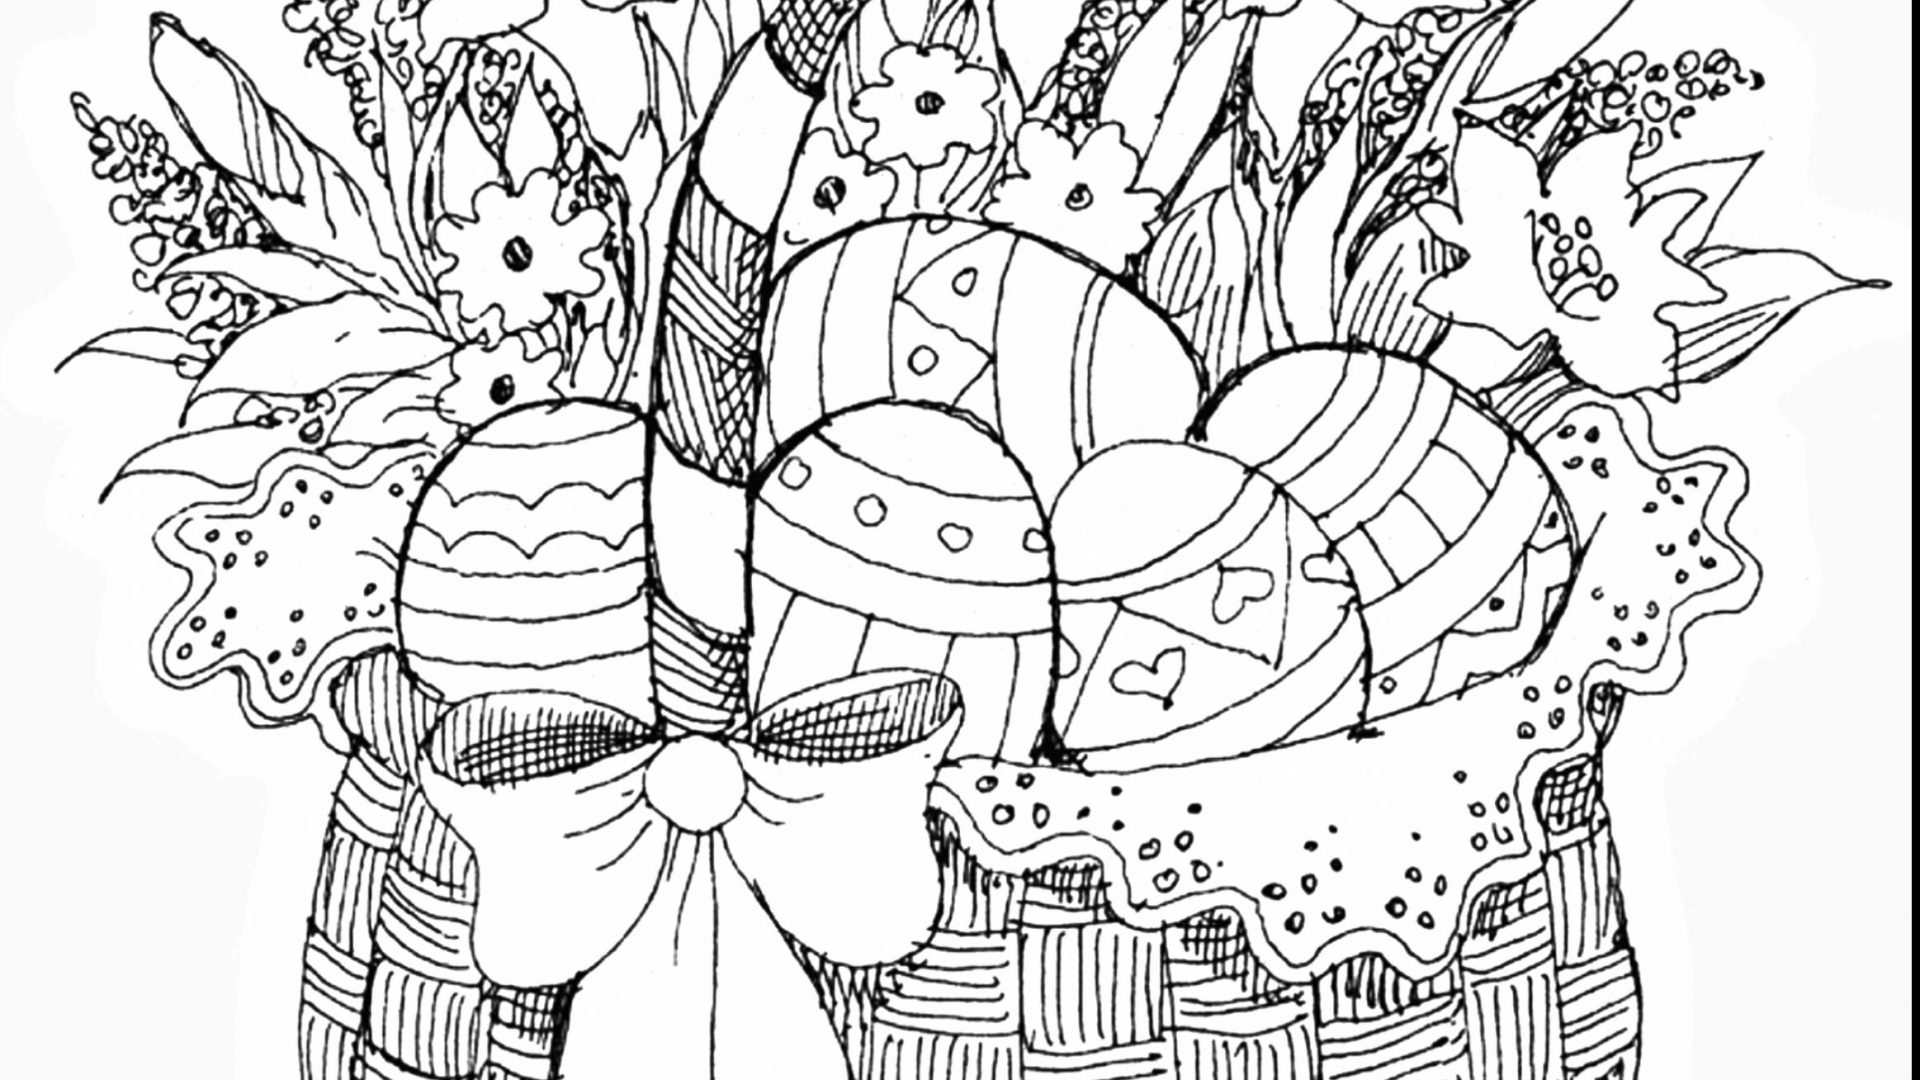 Easter Basketg Pages Easy Egg Colouring Book Empty Sensational Printable Of Easter Egg Designs Coloring Pages to Print